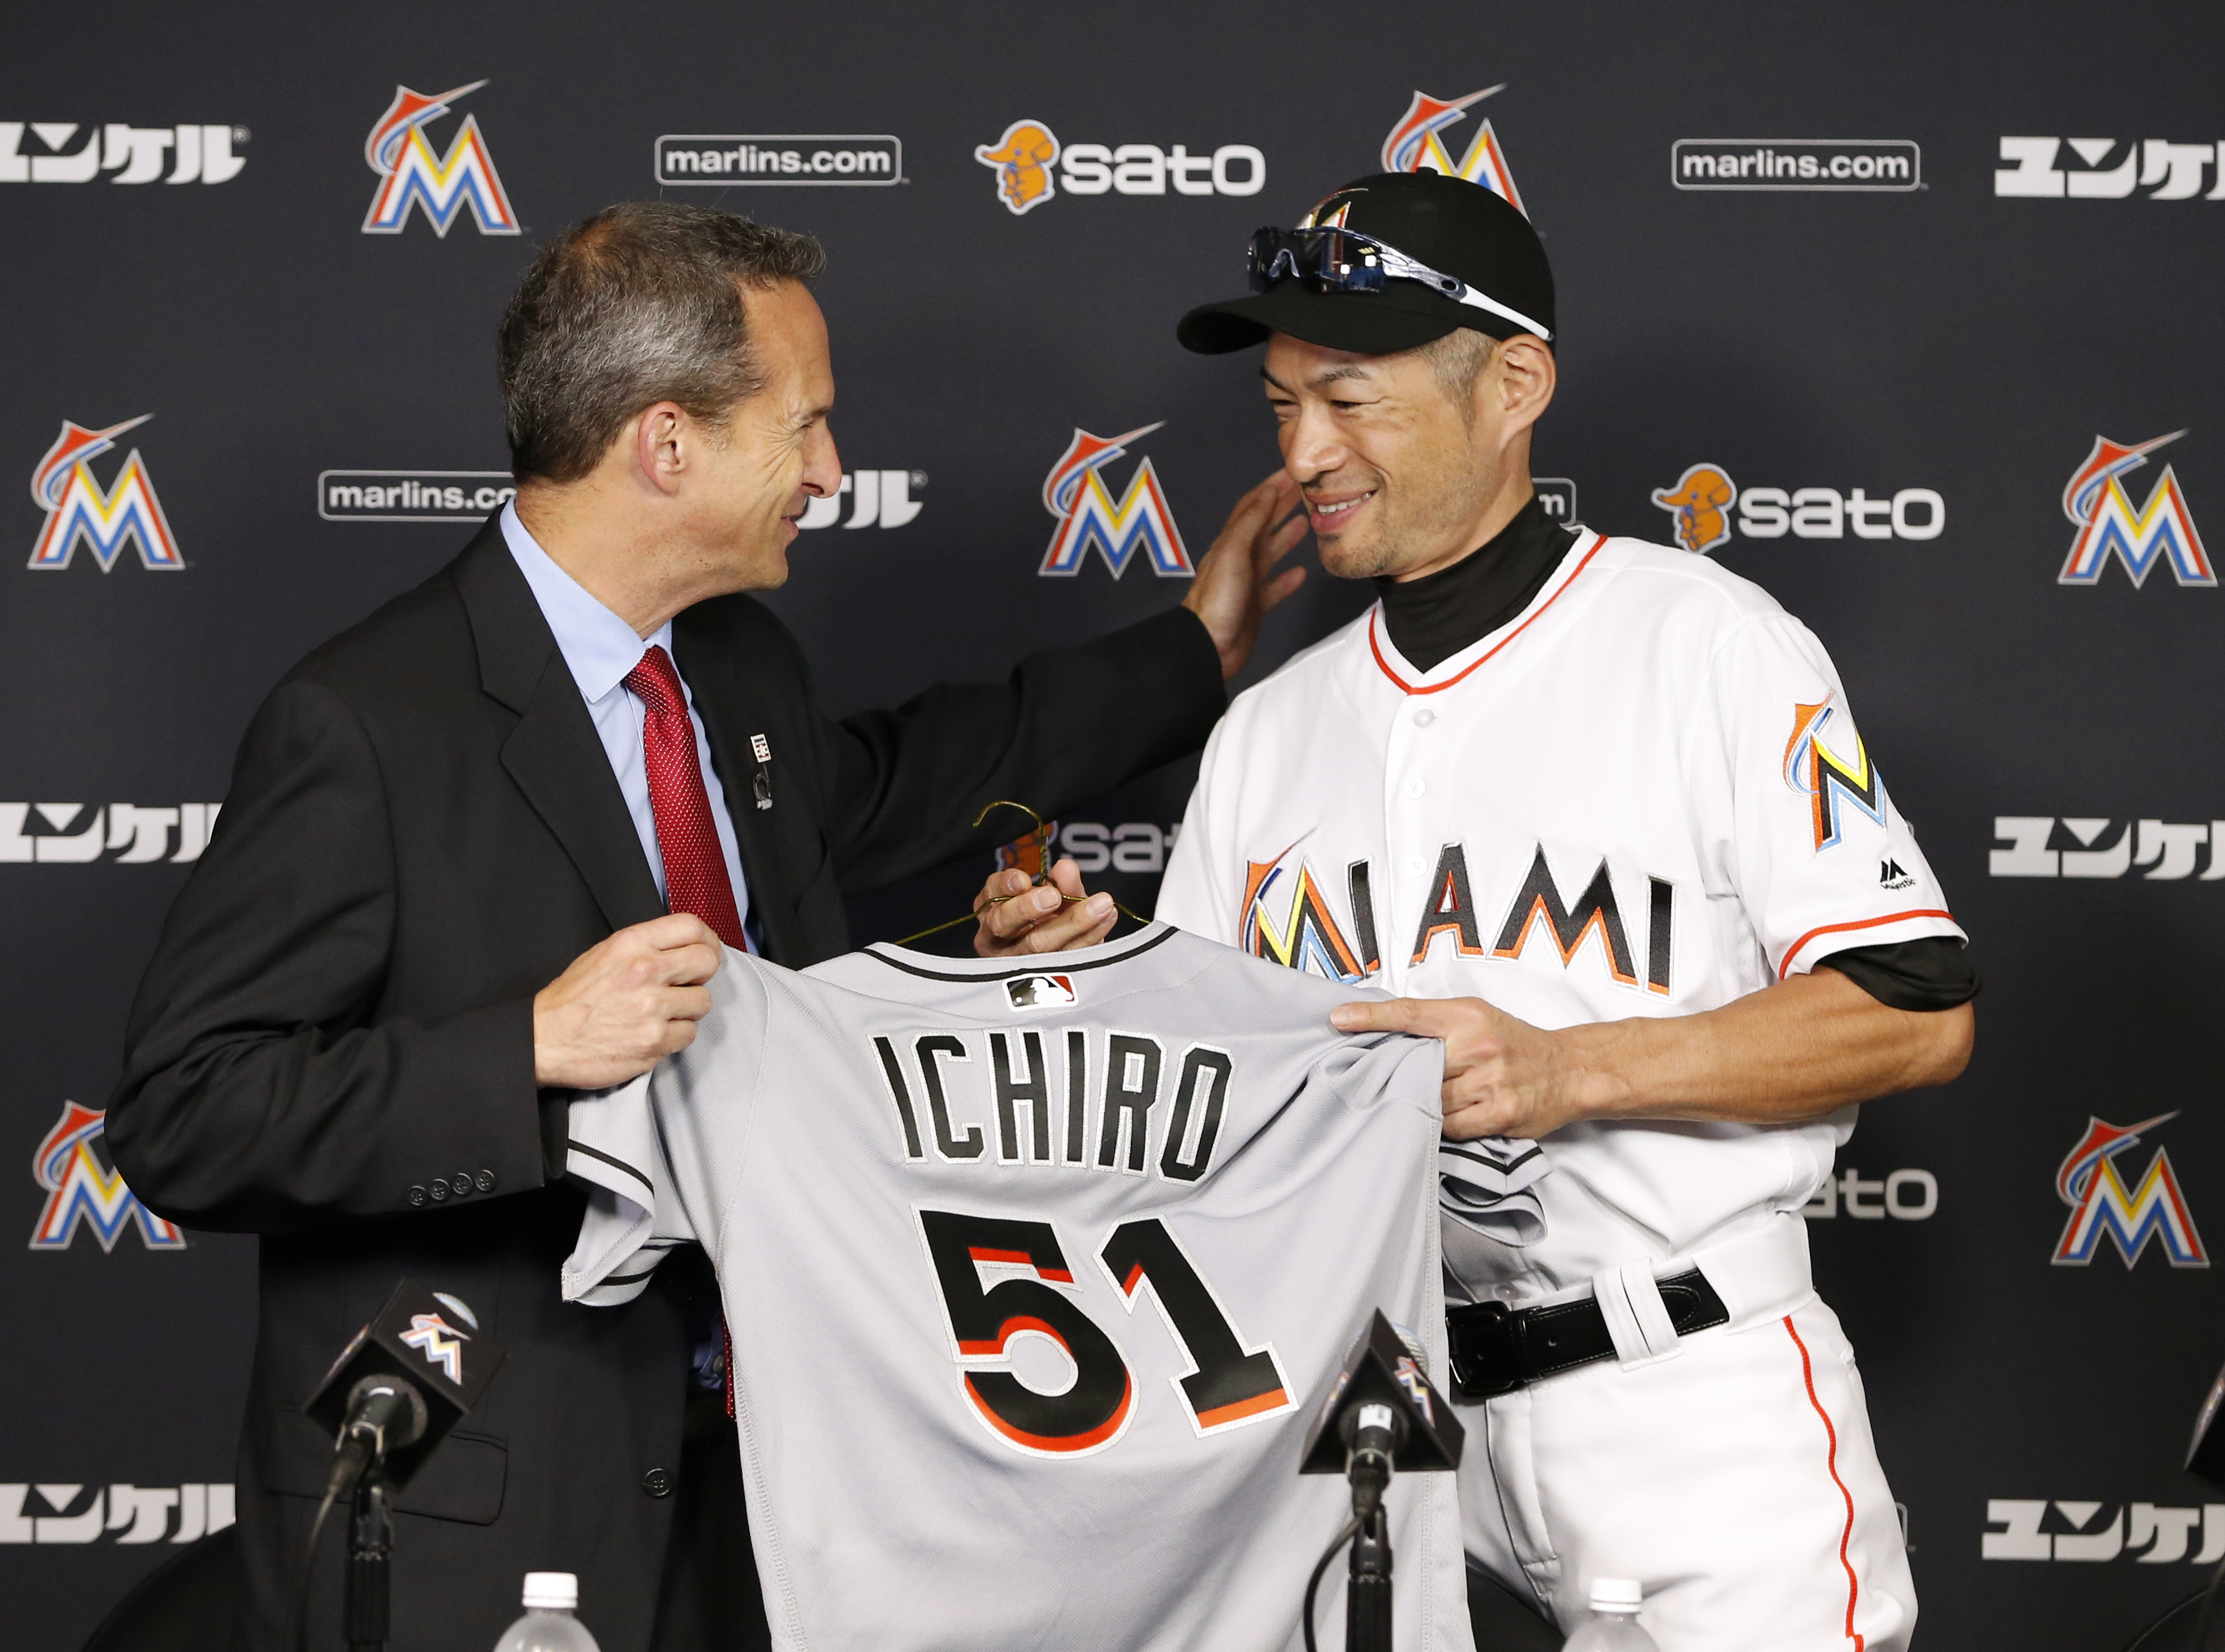 Jeff Idelson, left, president of the National Baseball Hall of Fame and Museum, and Miami Marlins' Ichiro Suzuki smile as Suzuki gives Idelson items from his 3,000 major league hit during a news conference, Monday, Aug. 8, 2016, in Miami. (AP Photo/Wilfre